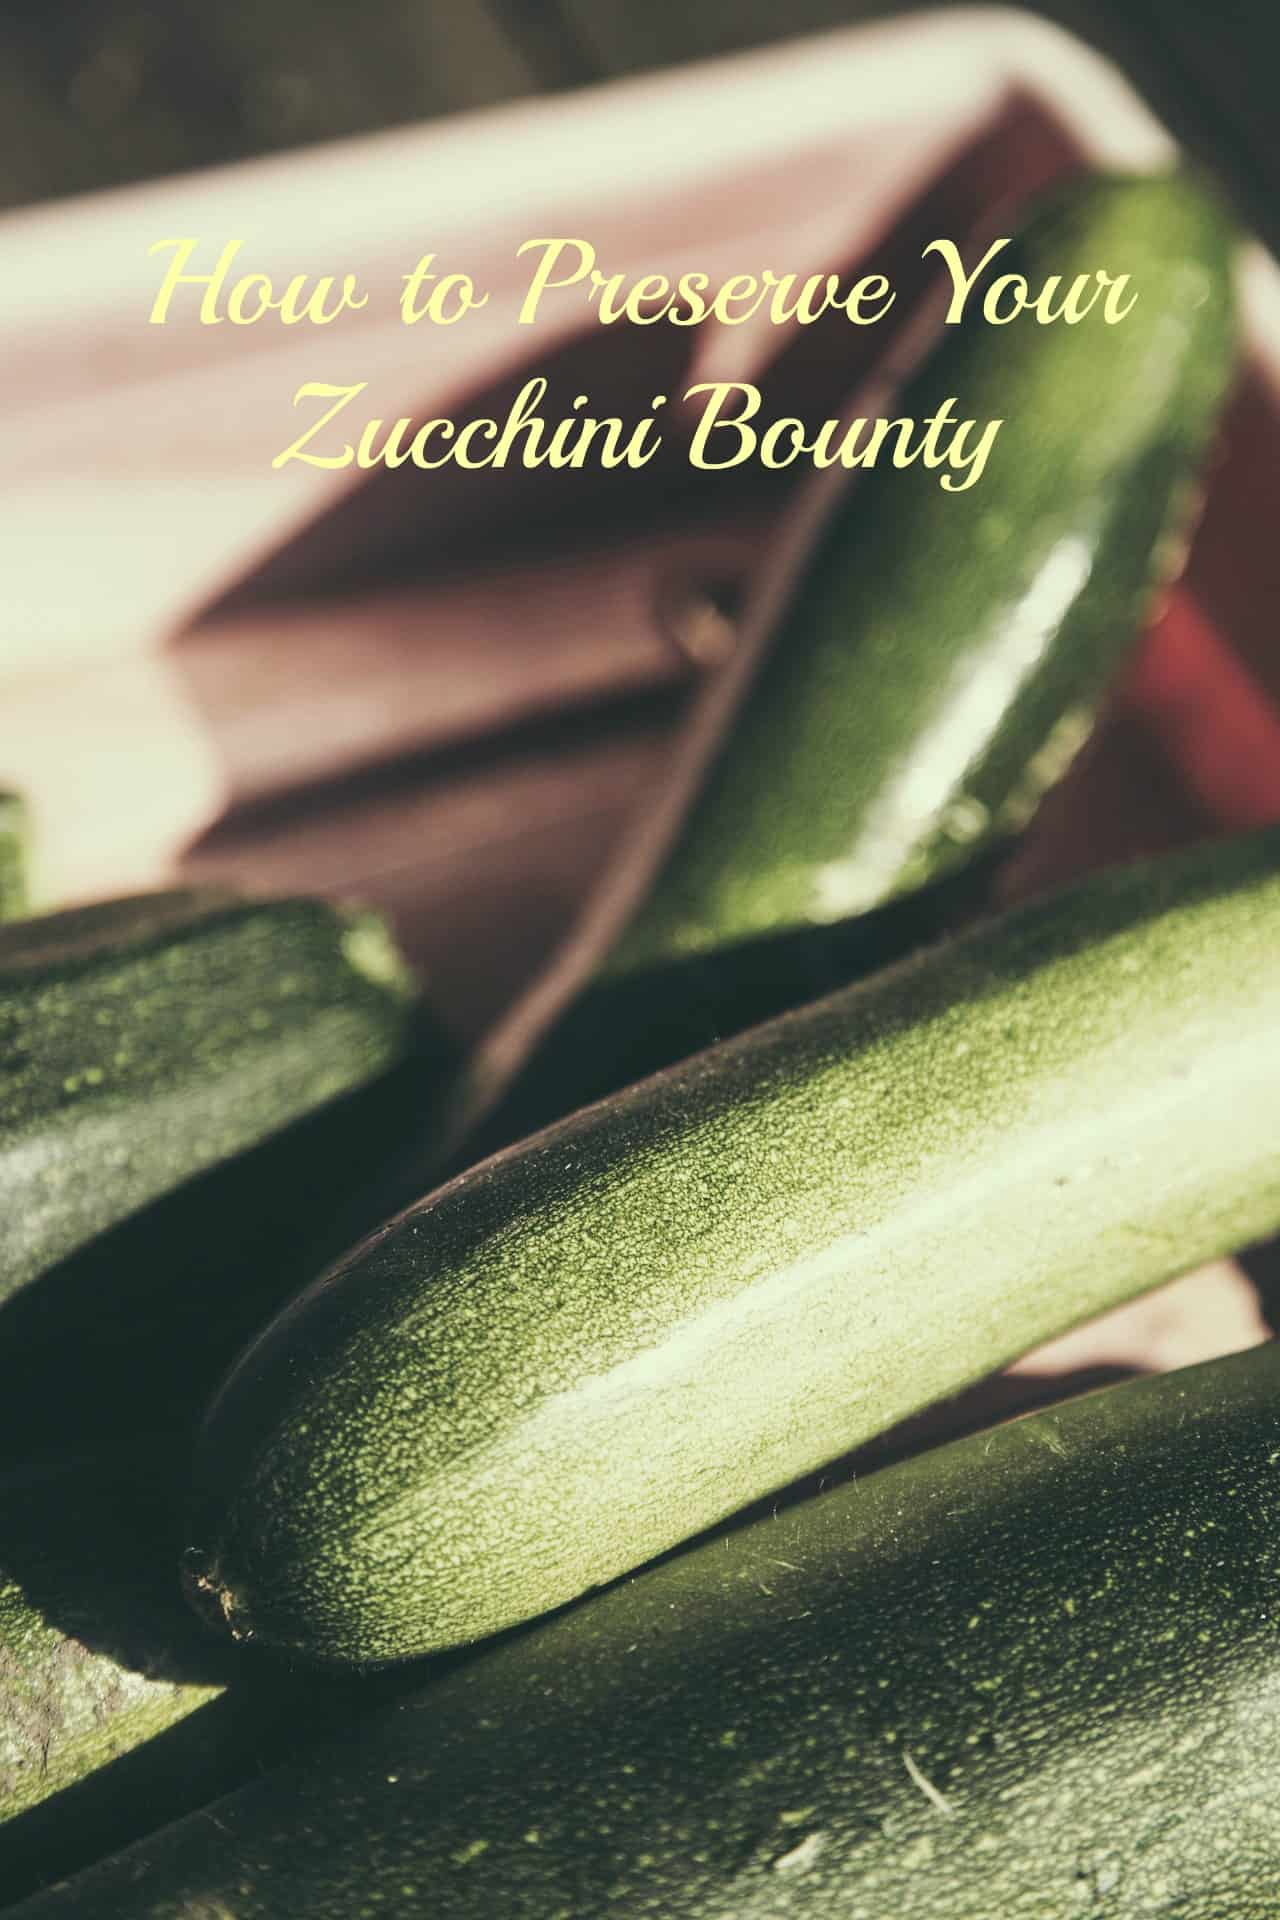 How to Preserve Your Zucchini Bounty